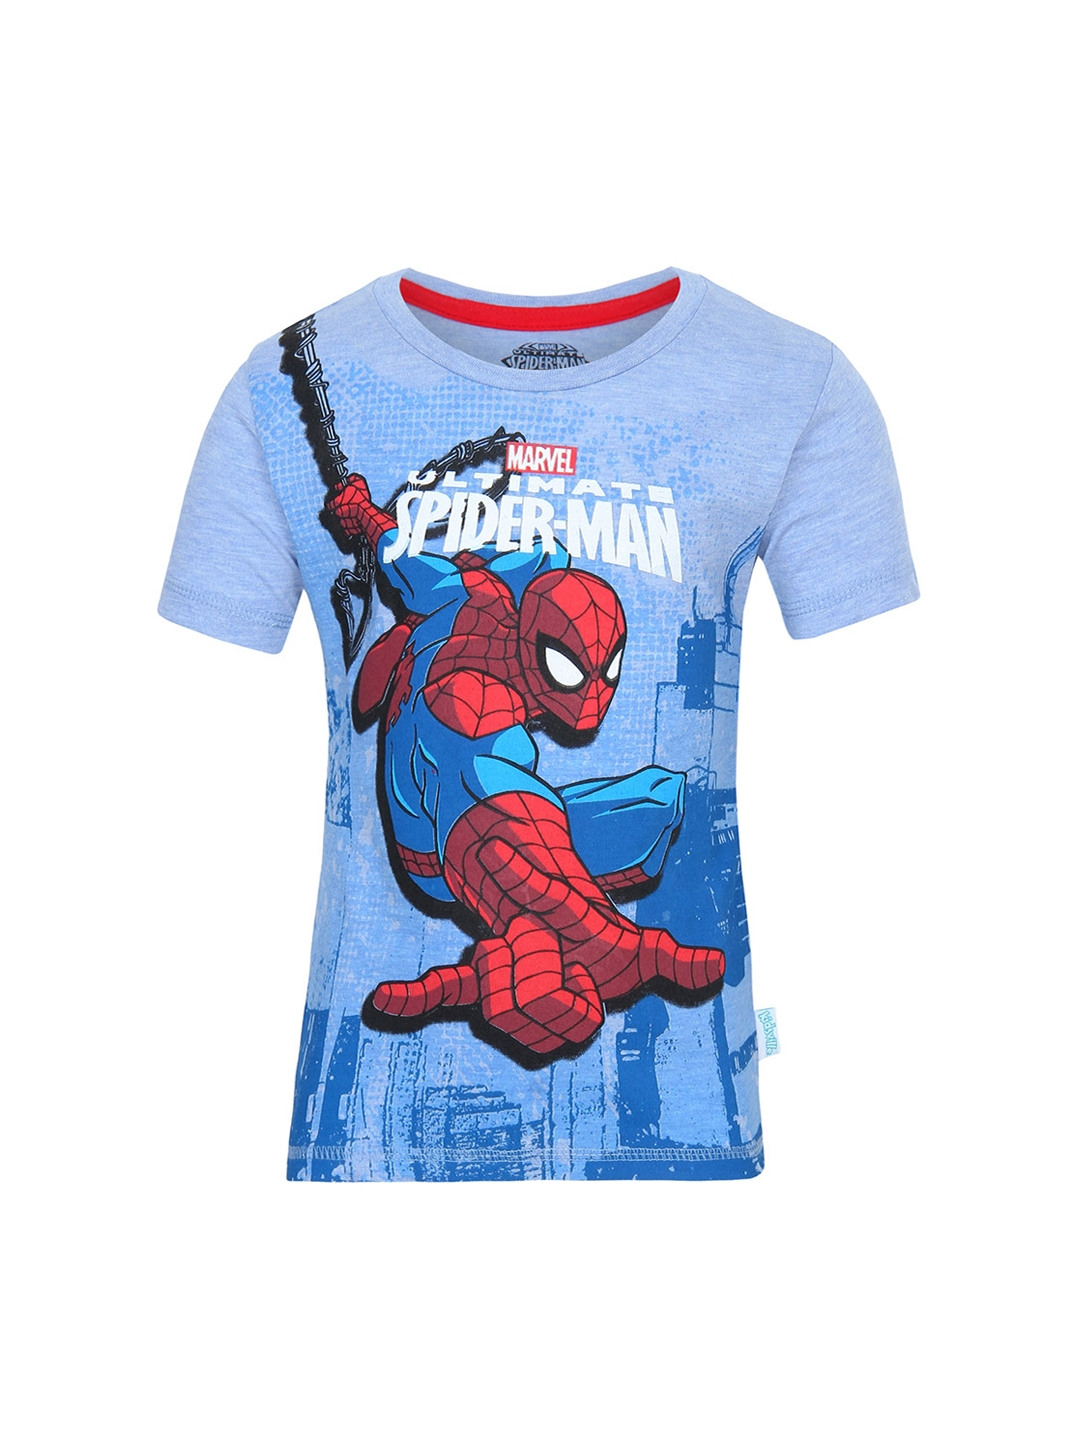 3959dd75 The Amazing Spiderman by Kids Ville Boys Blue Printed Round Neck T-shirt